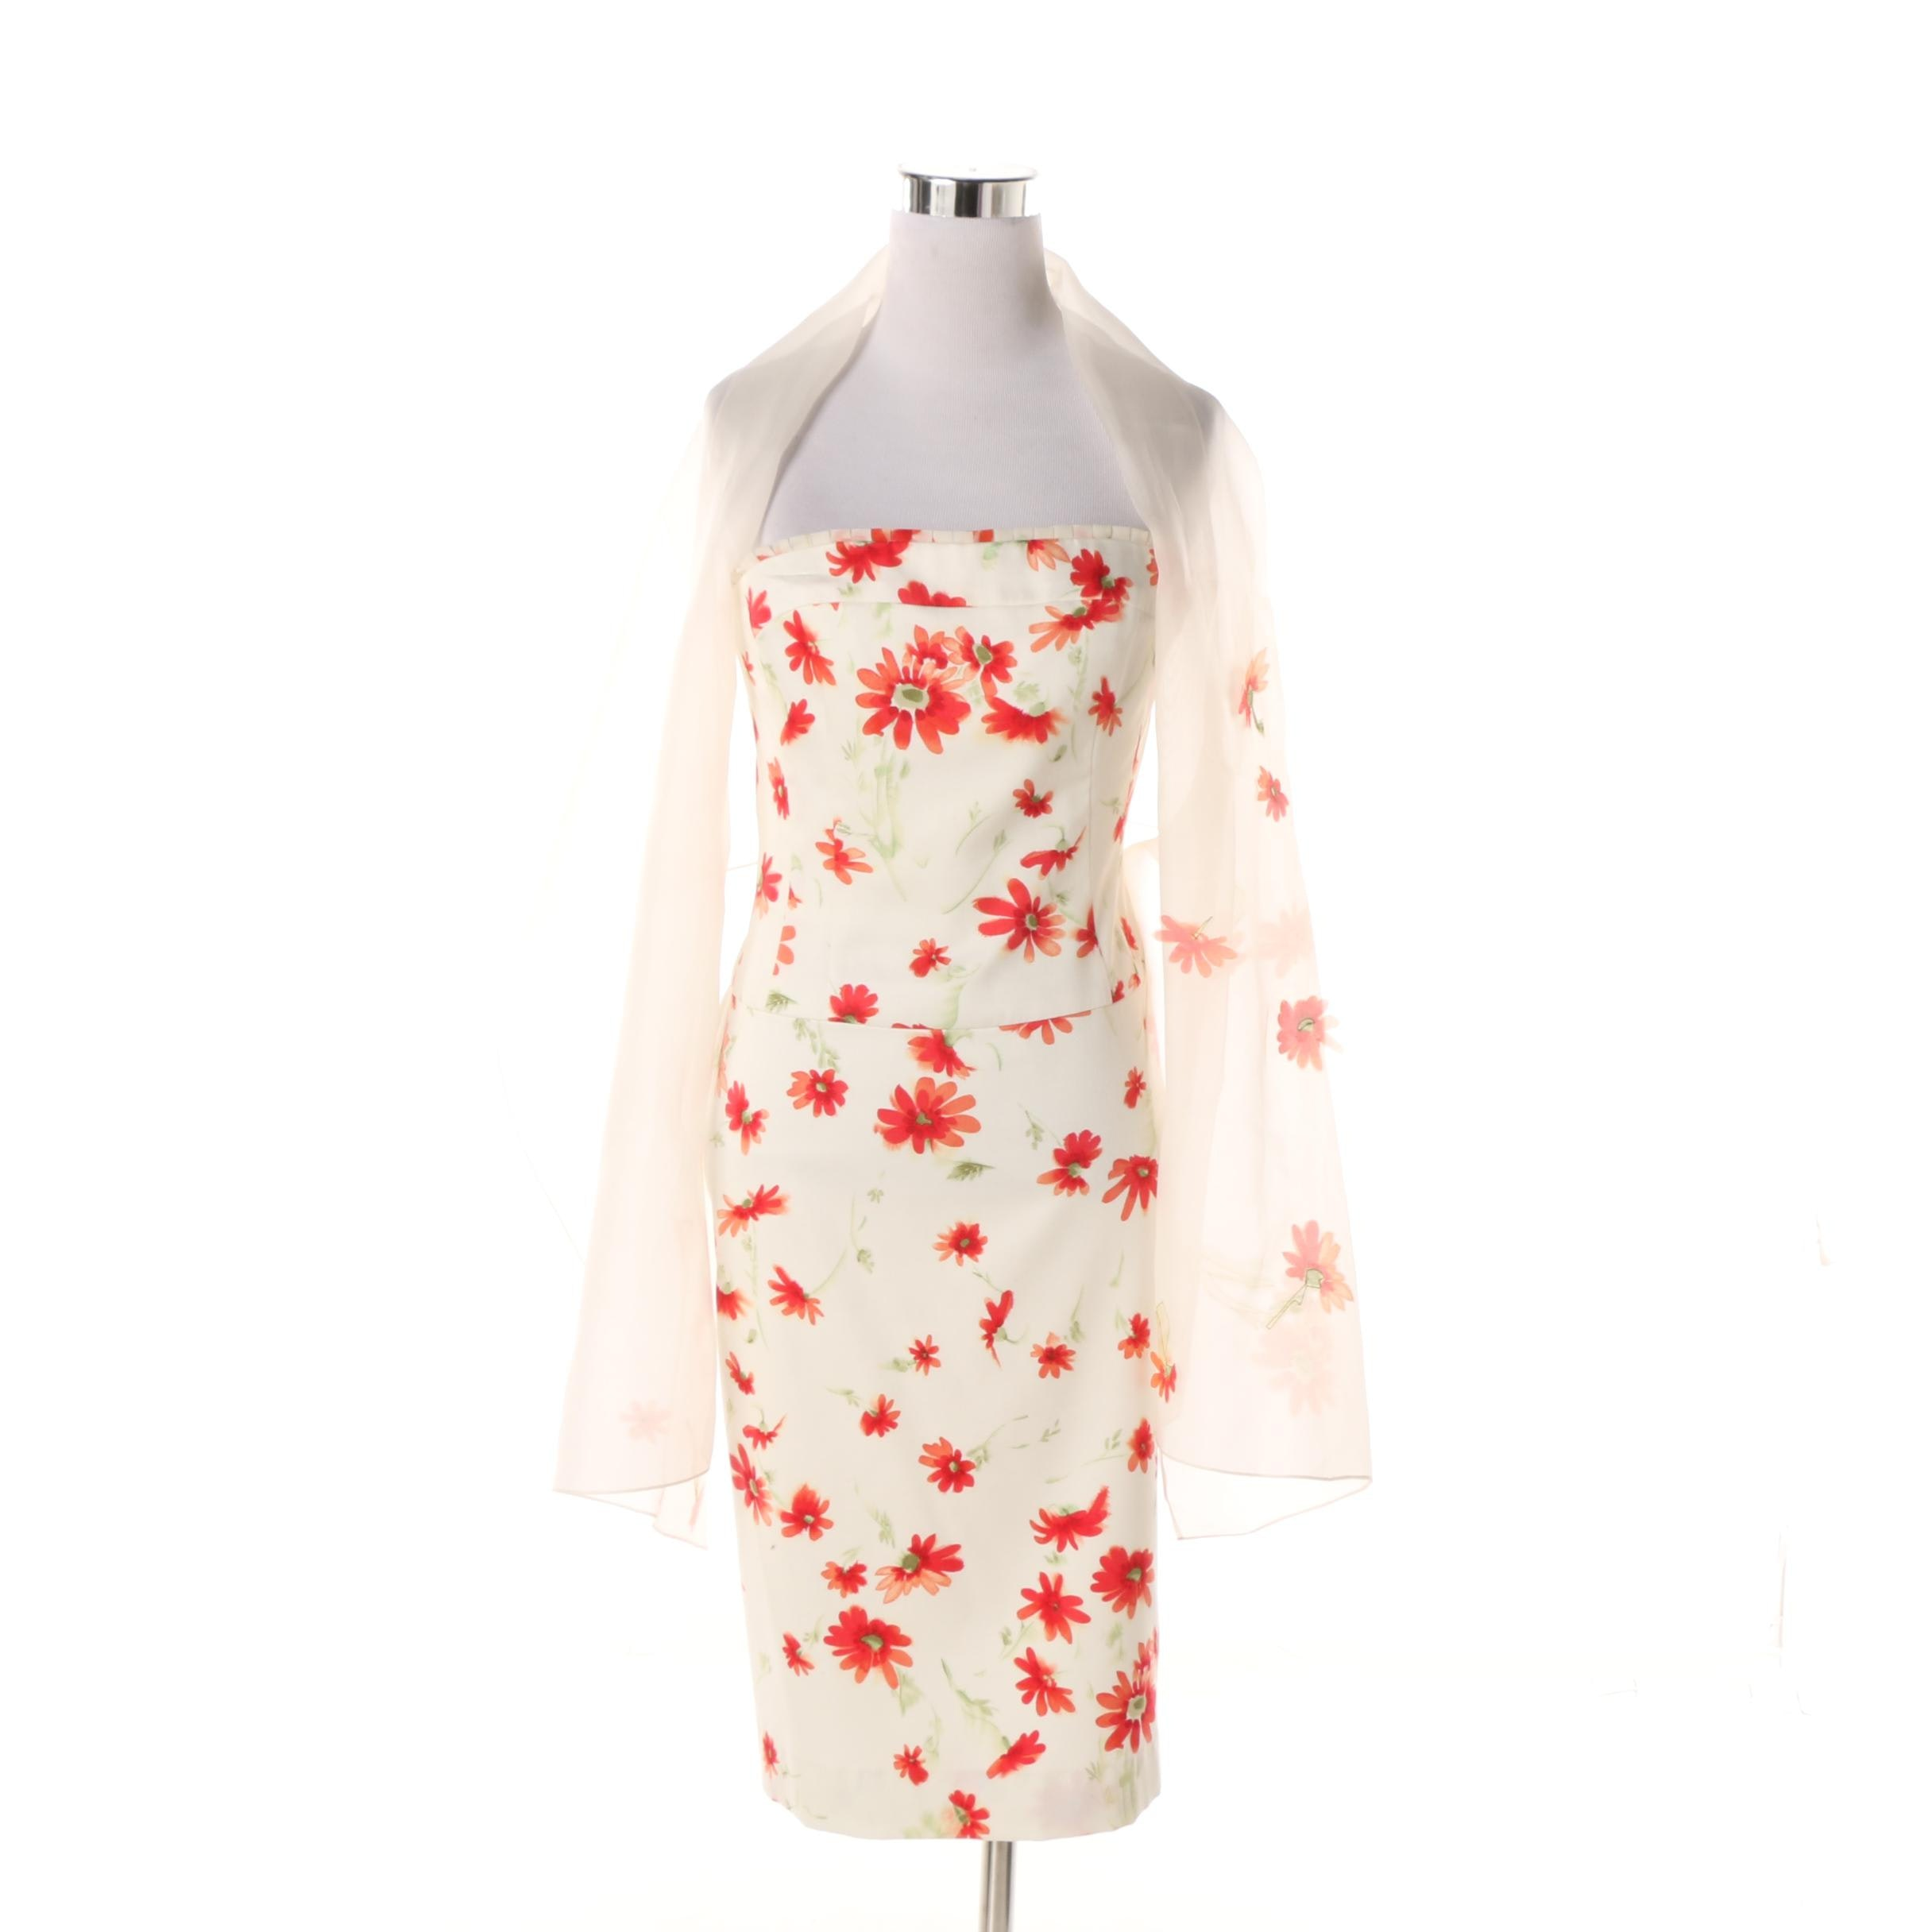 Kay Unger New York Floral Print Strapless Cocktail Dress with Wrap